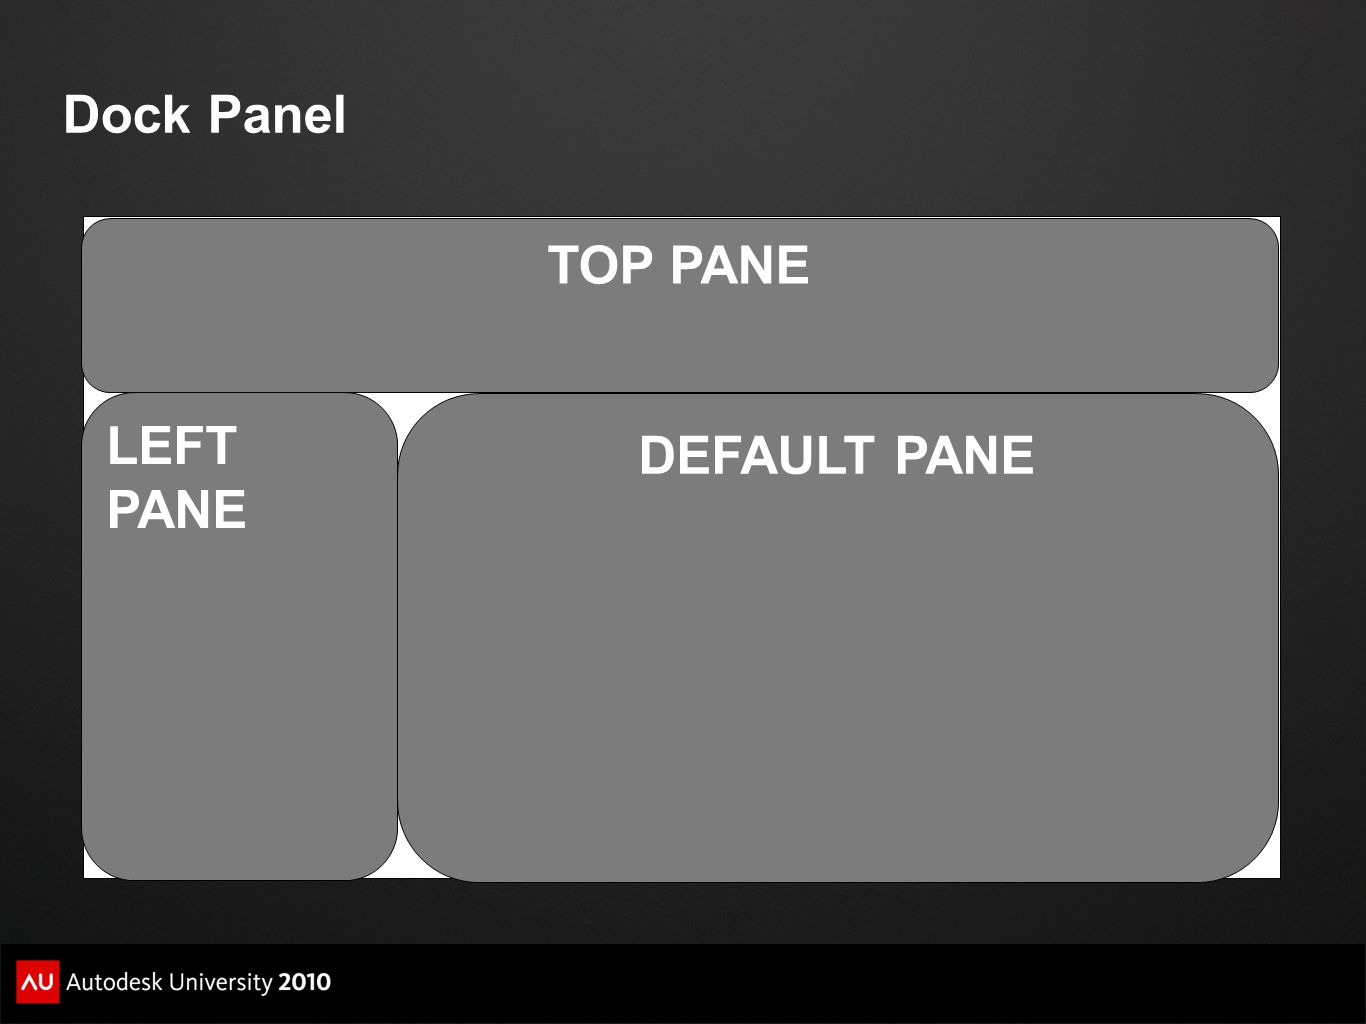 Dock Panel TOP PANE LEFT PANE DEFAULT PANE